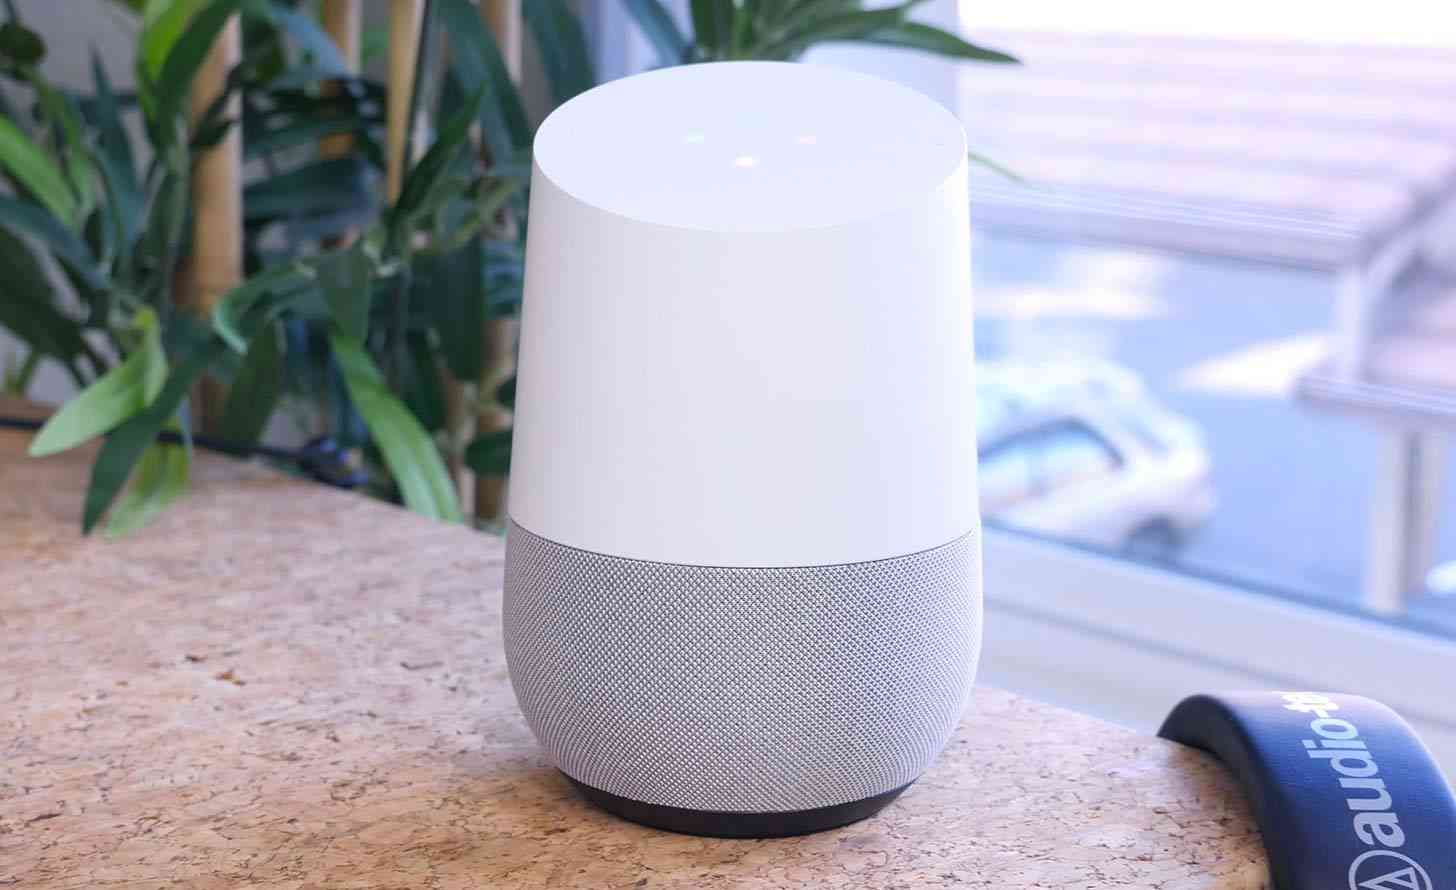 Google Home unboxing video